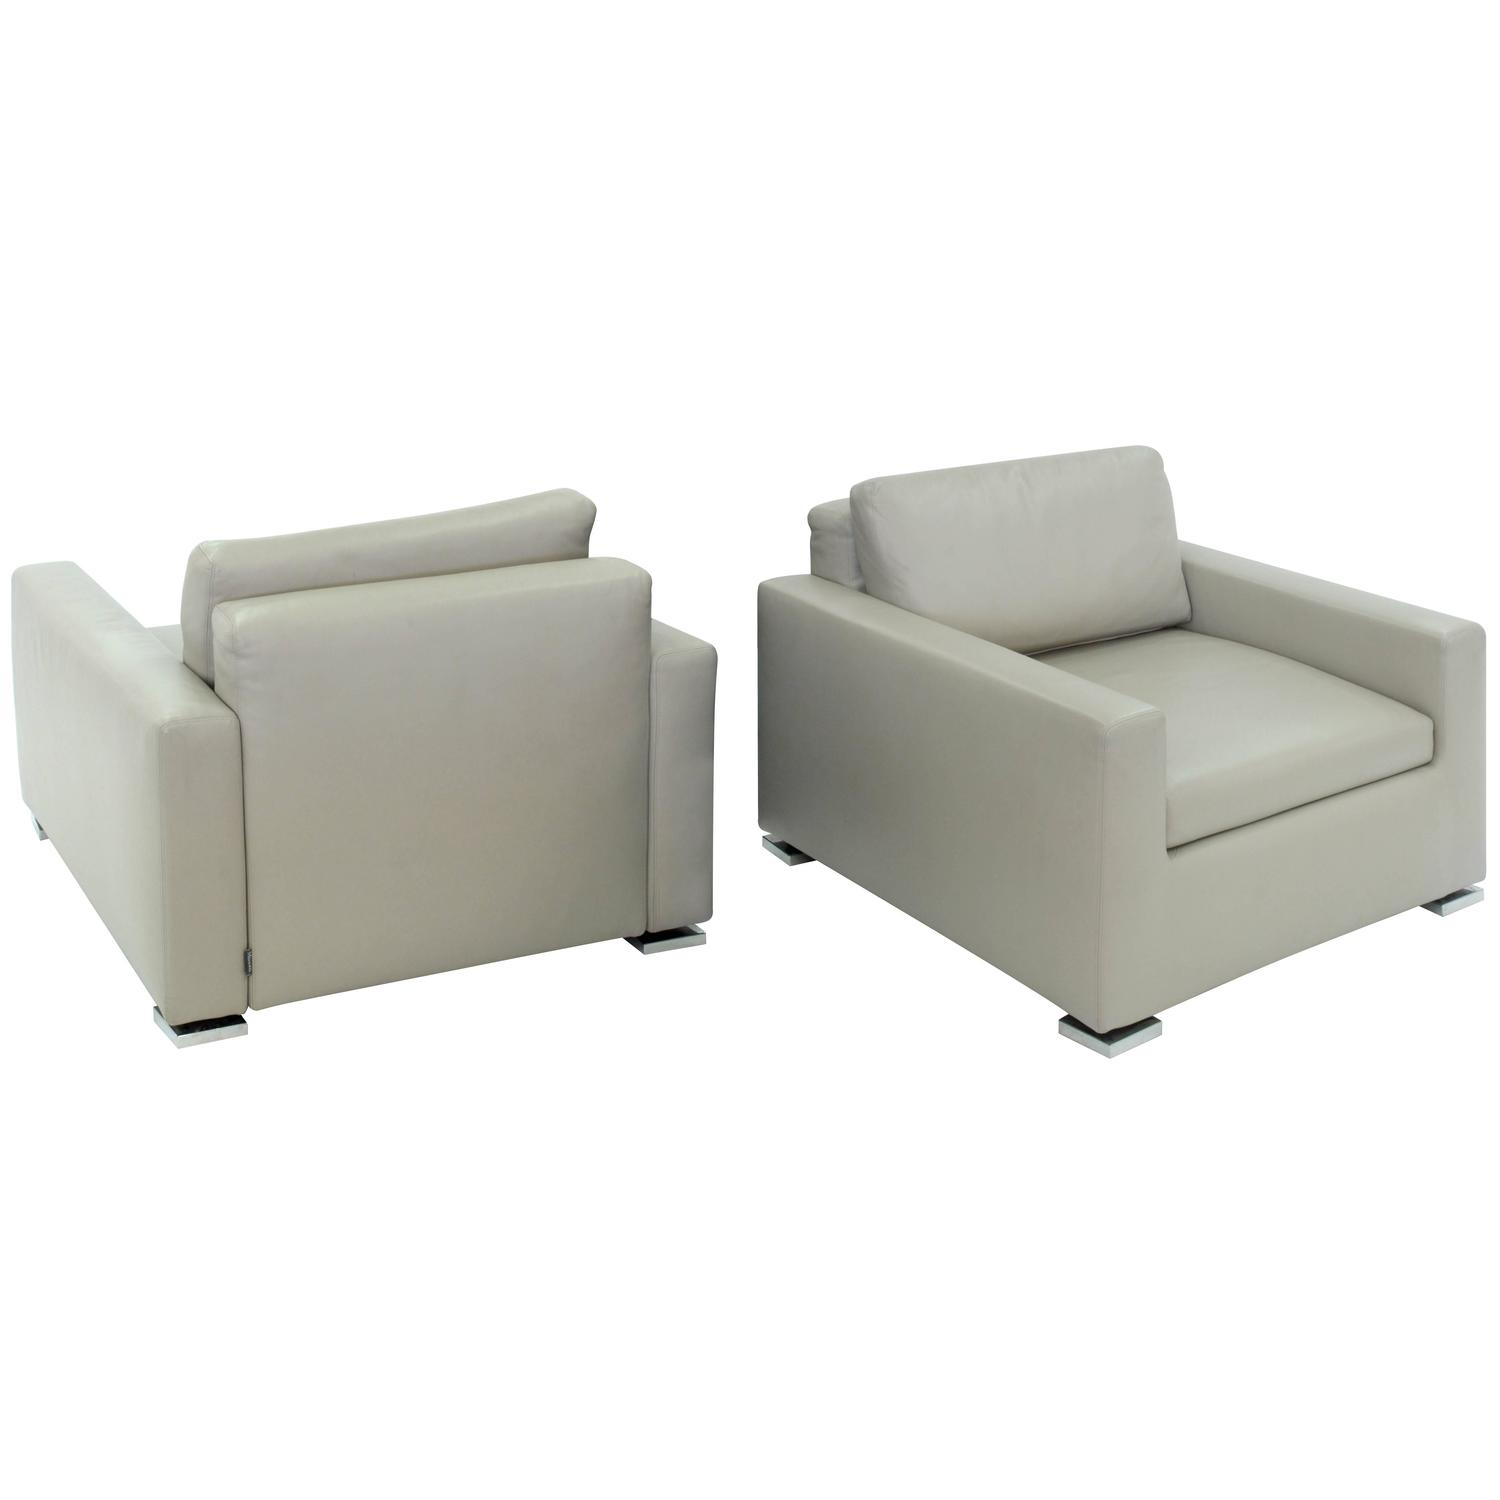 pair of clean line lounge chairs by minotti at 1stdibs